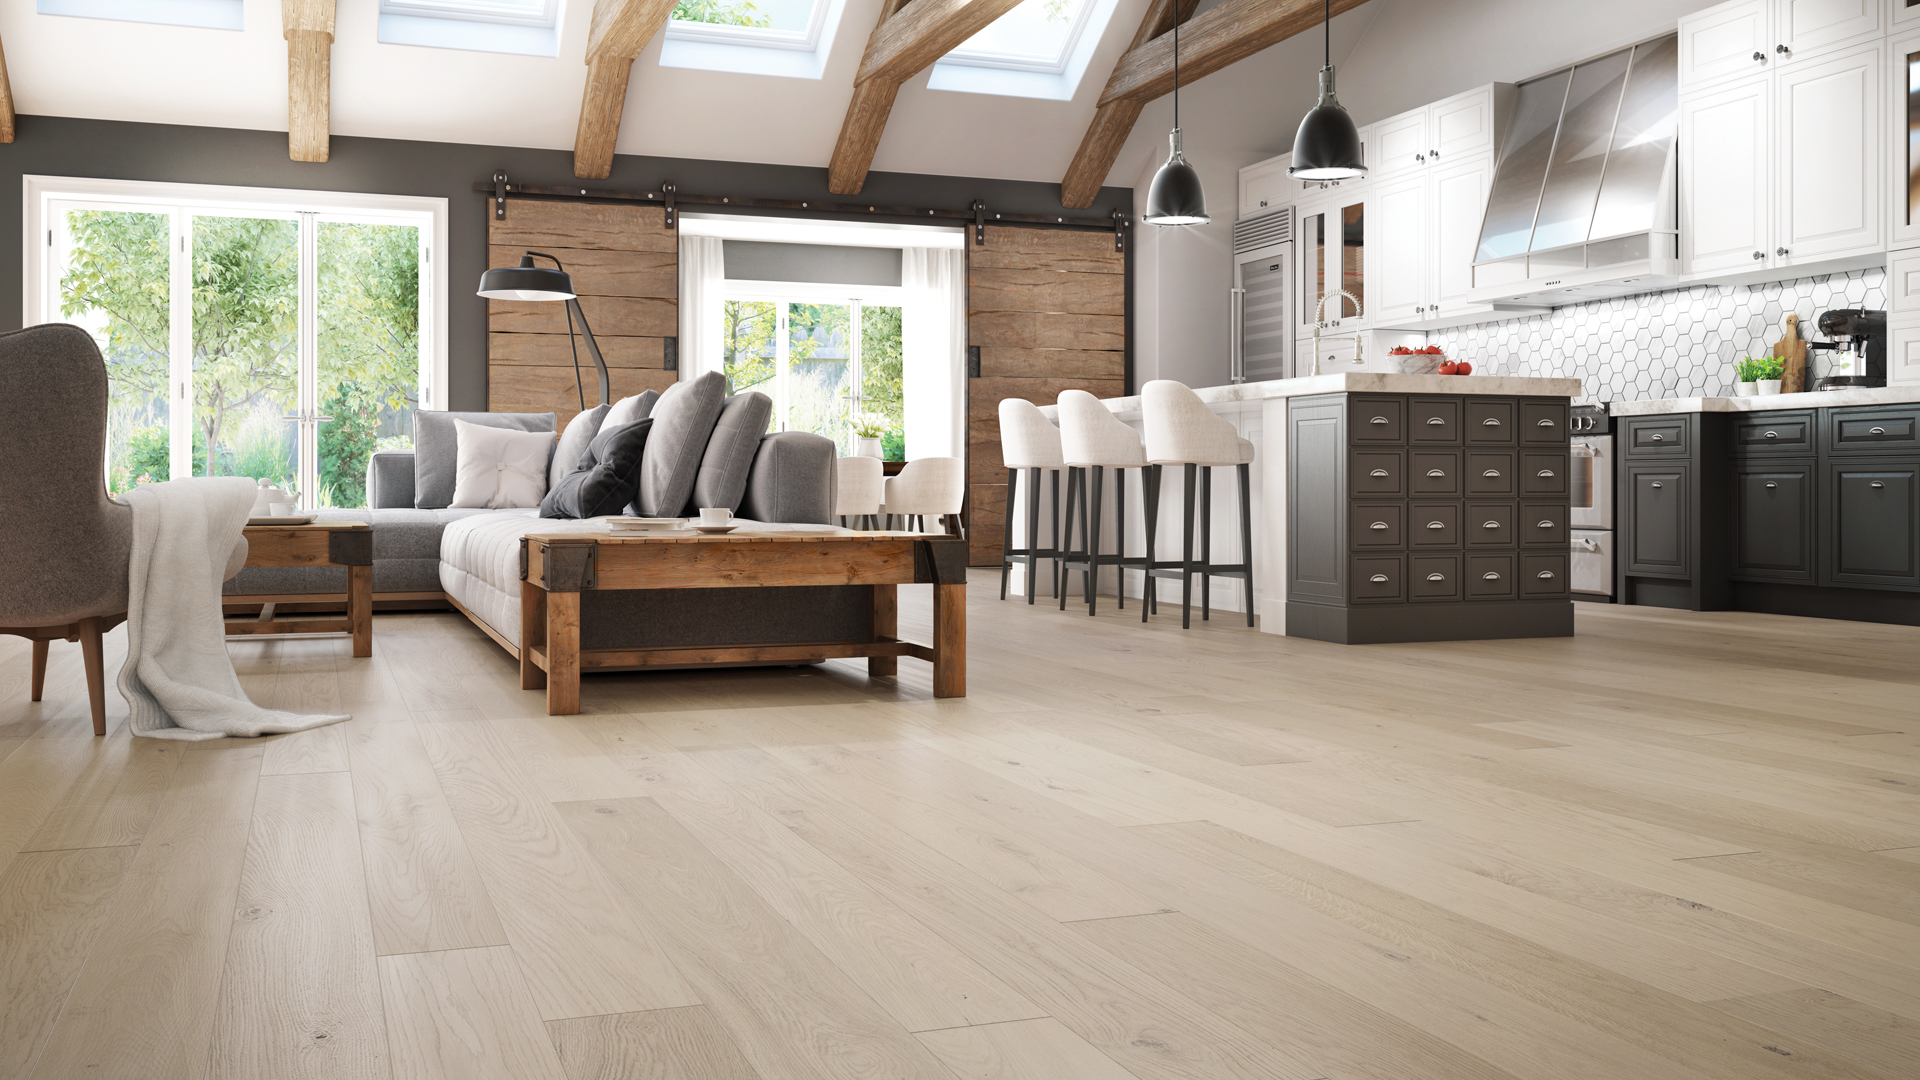 Install Timber Floor And Adorn The Home Beautifully – Check The Guide!